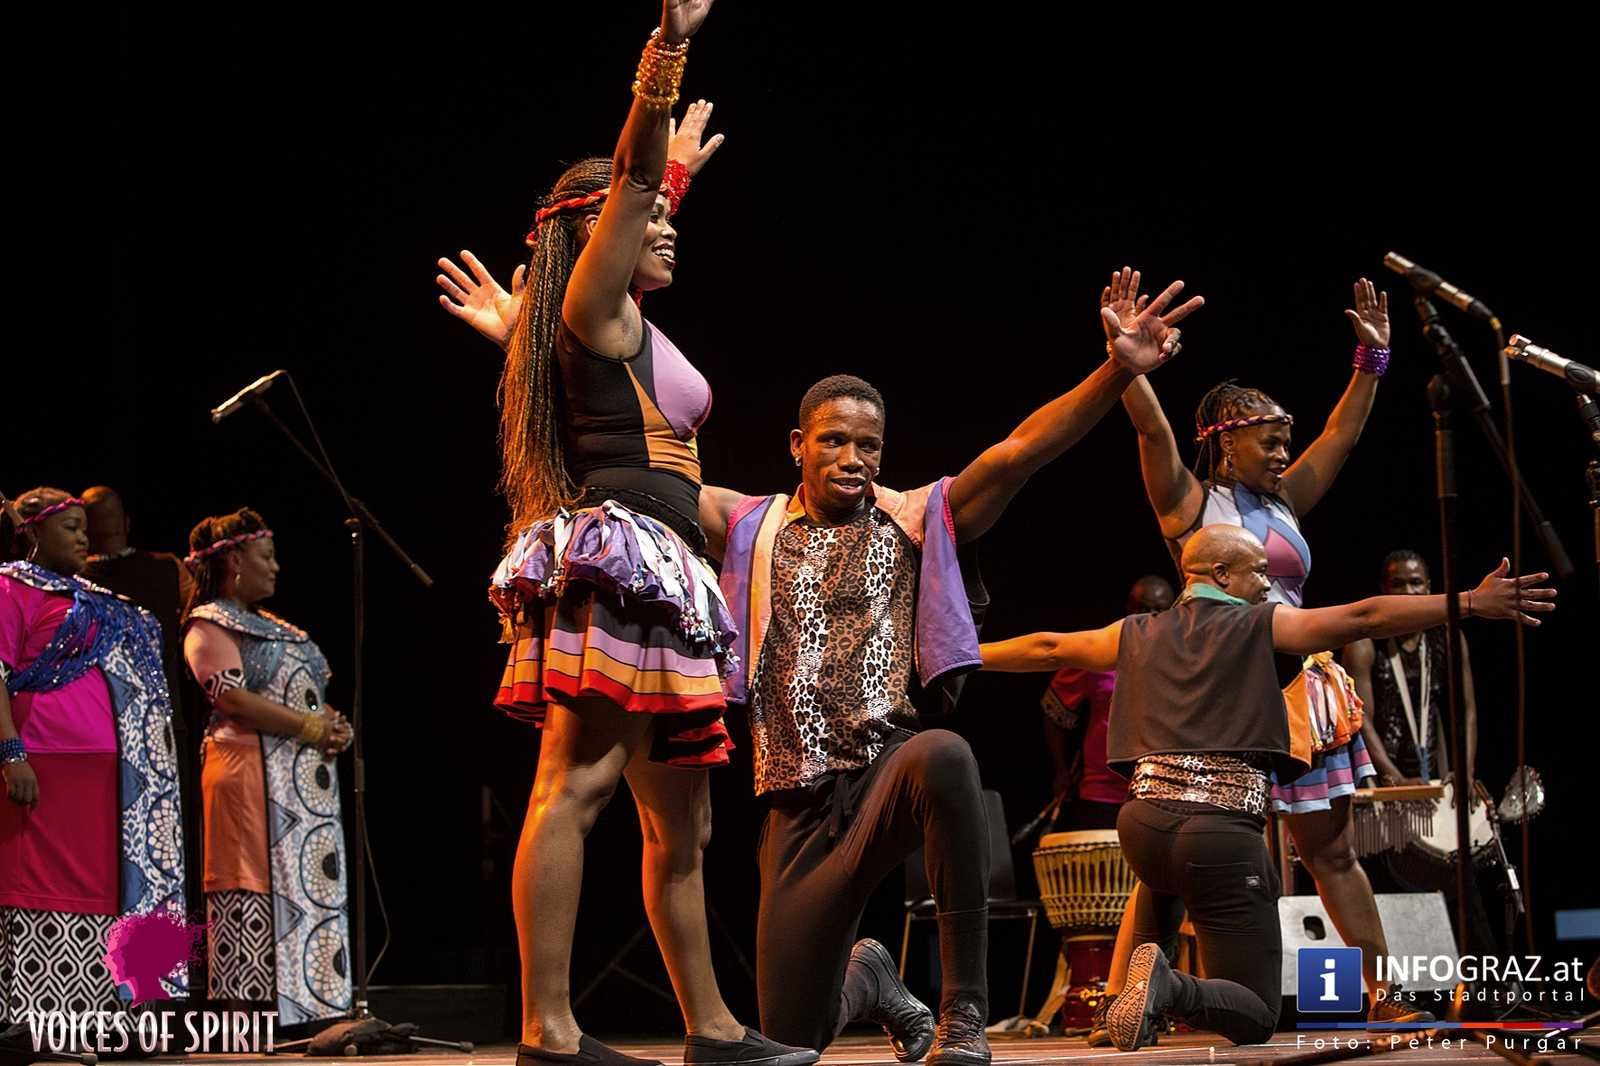 soweto gospel choir internationales chorfestival statdthalle graz voices of spirit eroeffnung festivals 2016 090